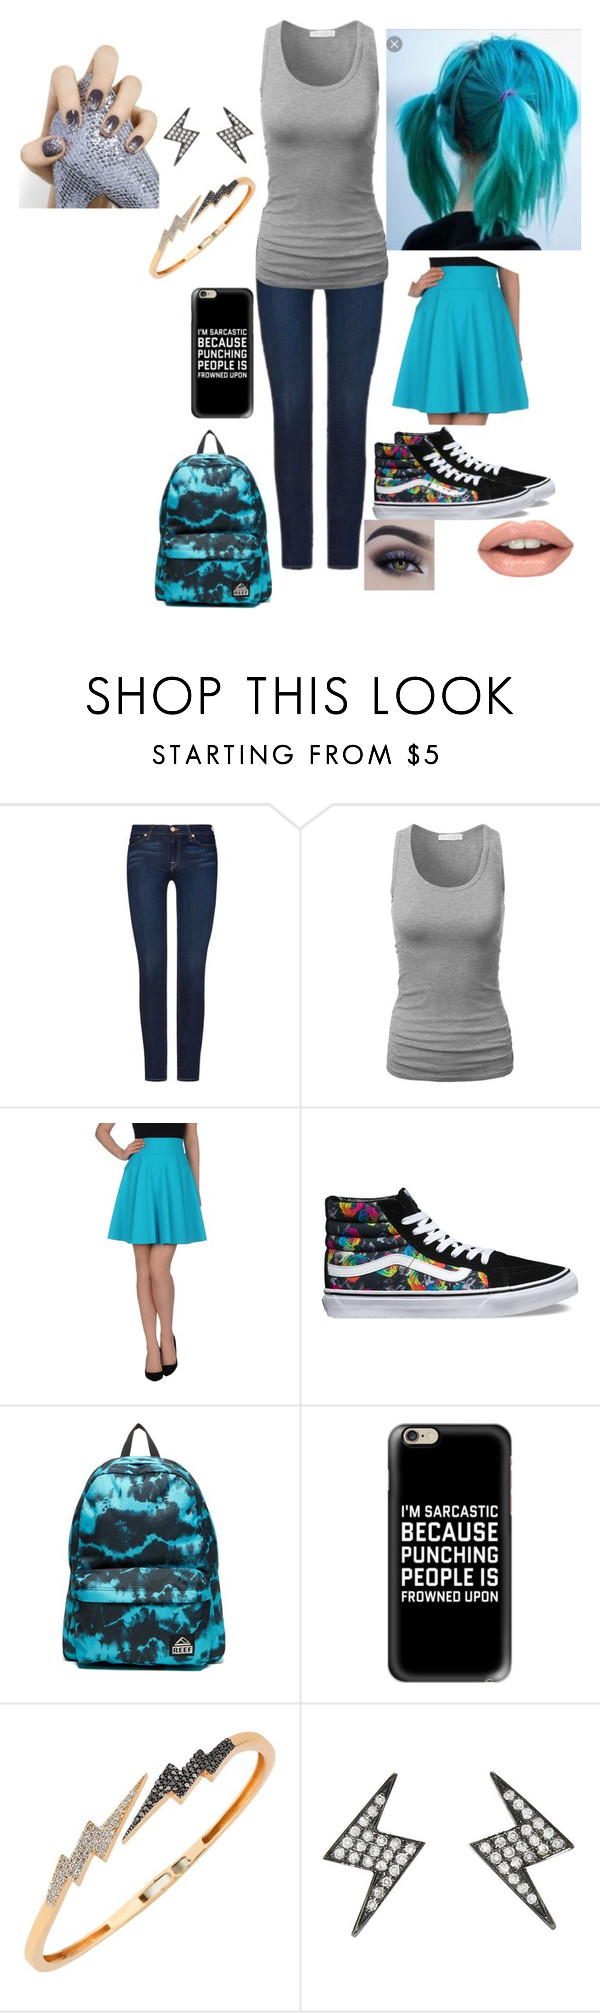 """Bruno Ritter (solar) causal"" by racheljohnson1226 ❤ liked on Polyvore featuring 7 For All Mankind, Christies à Porter, Vans, Reef, Casetify, Bee Goddess, Shay and Essie"